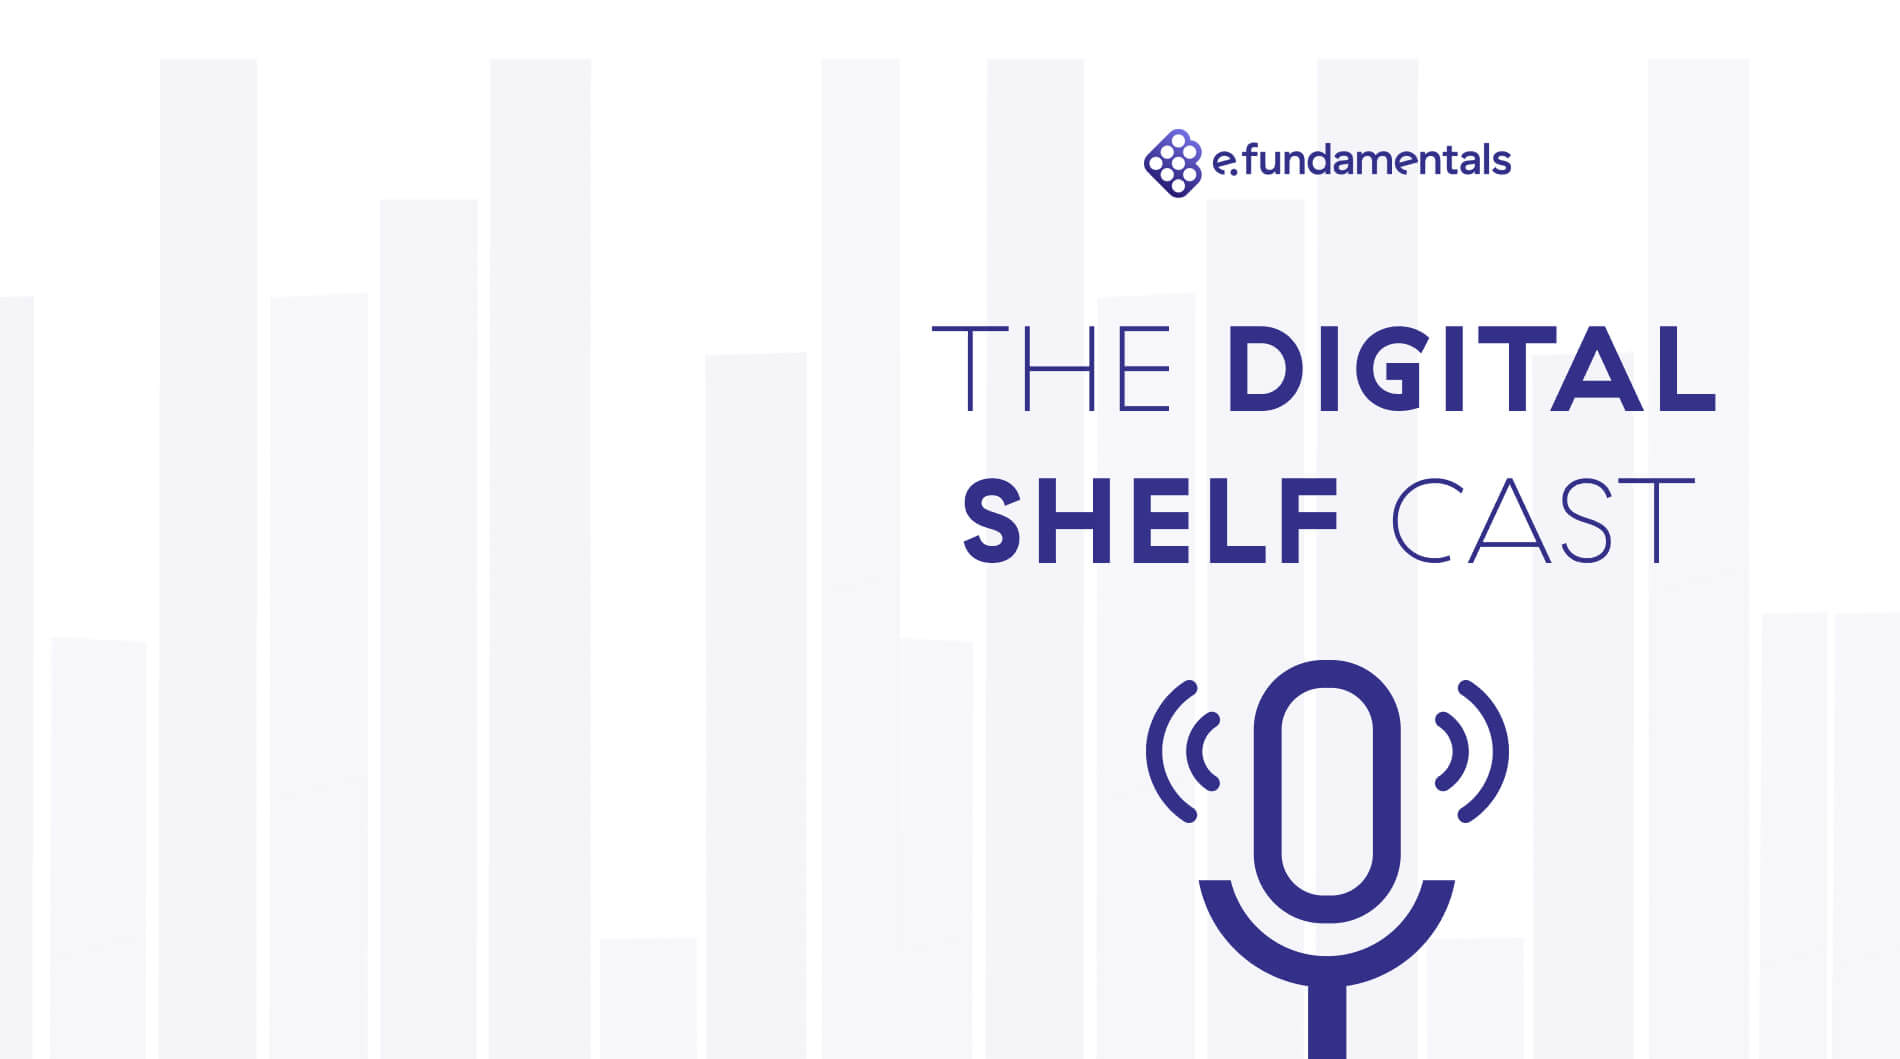 The Digital Shelf Cast Podcast. A CPG's Guide to Black Friday #1